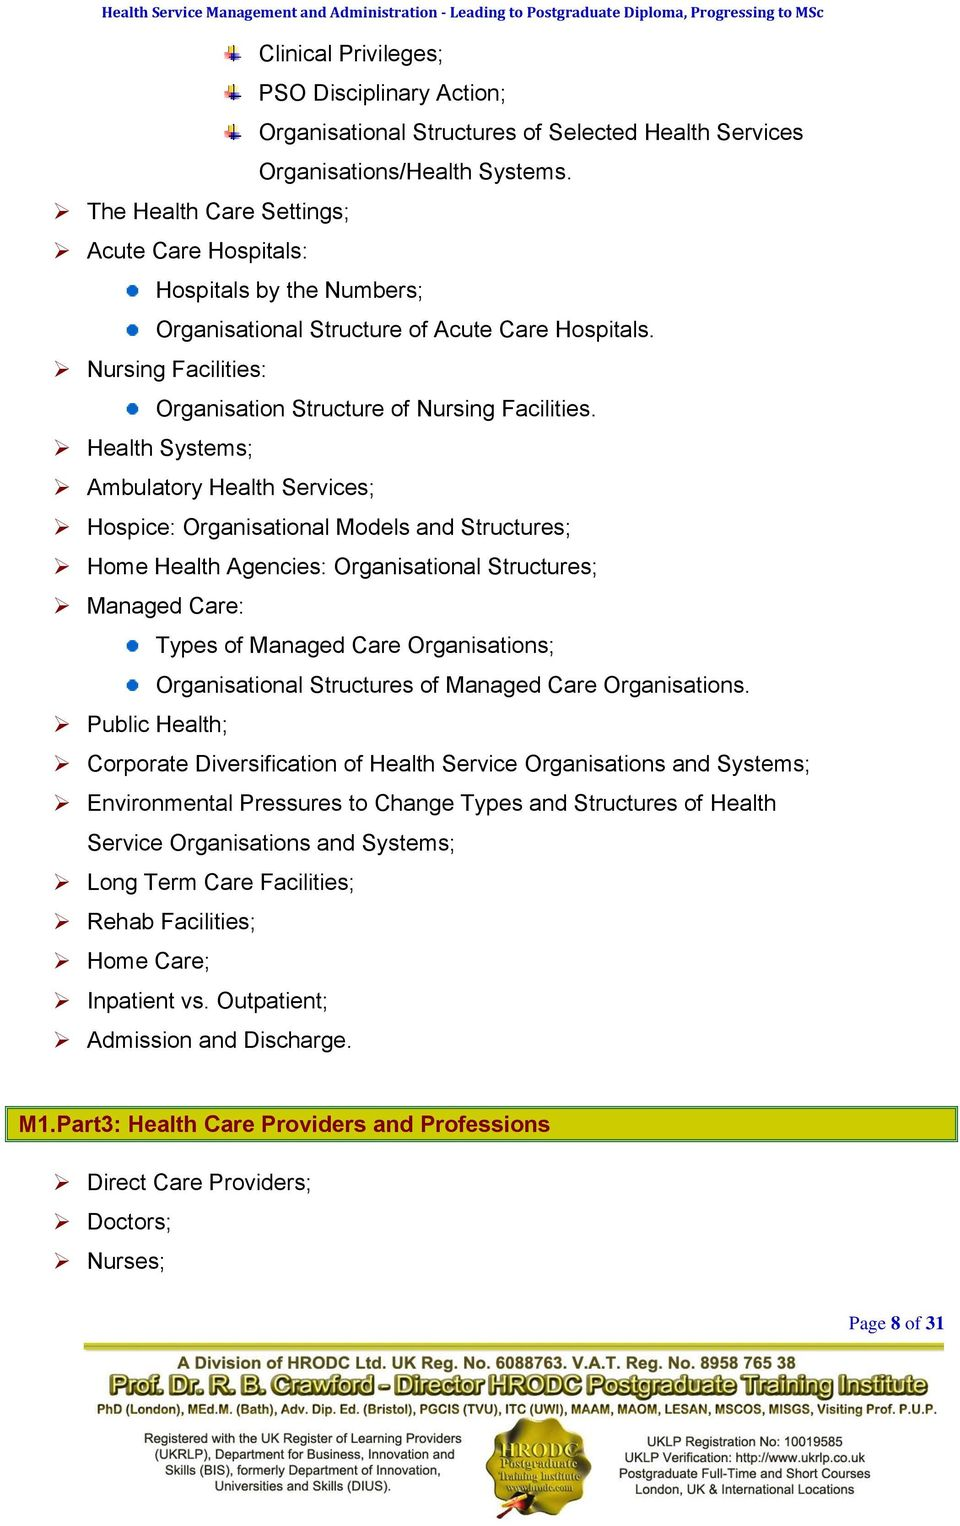 Ambulatory Health Services; Hospice: Organisational Models and Structures; Home Health Agencies: Organisational Structures; Managed Care: Public Health; Types of Managed Care Organisations;